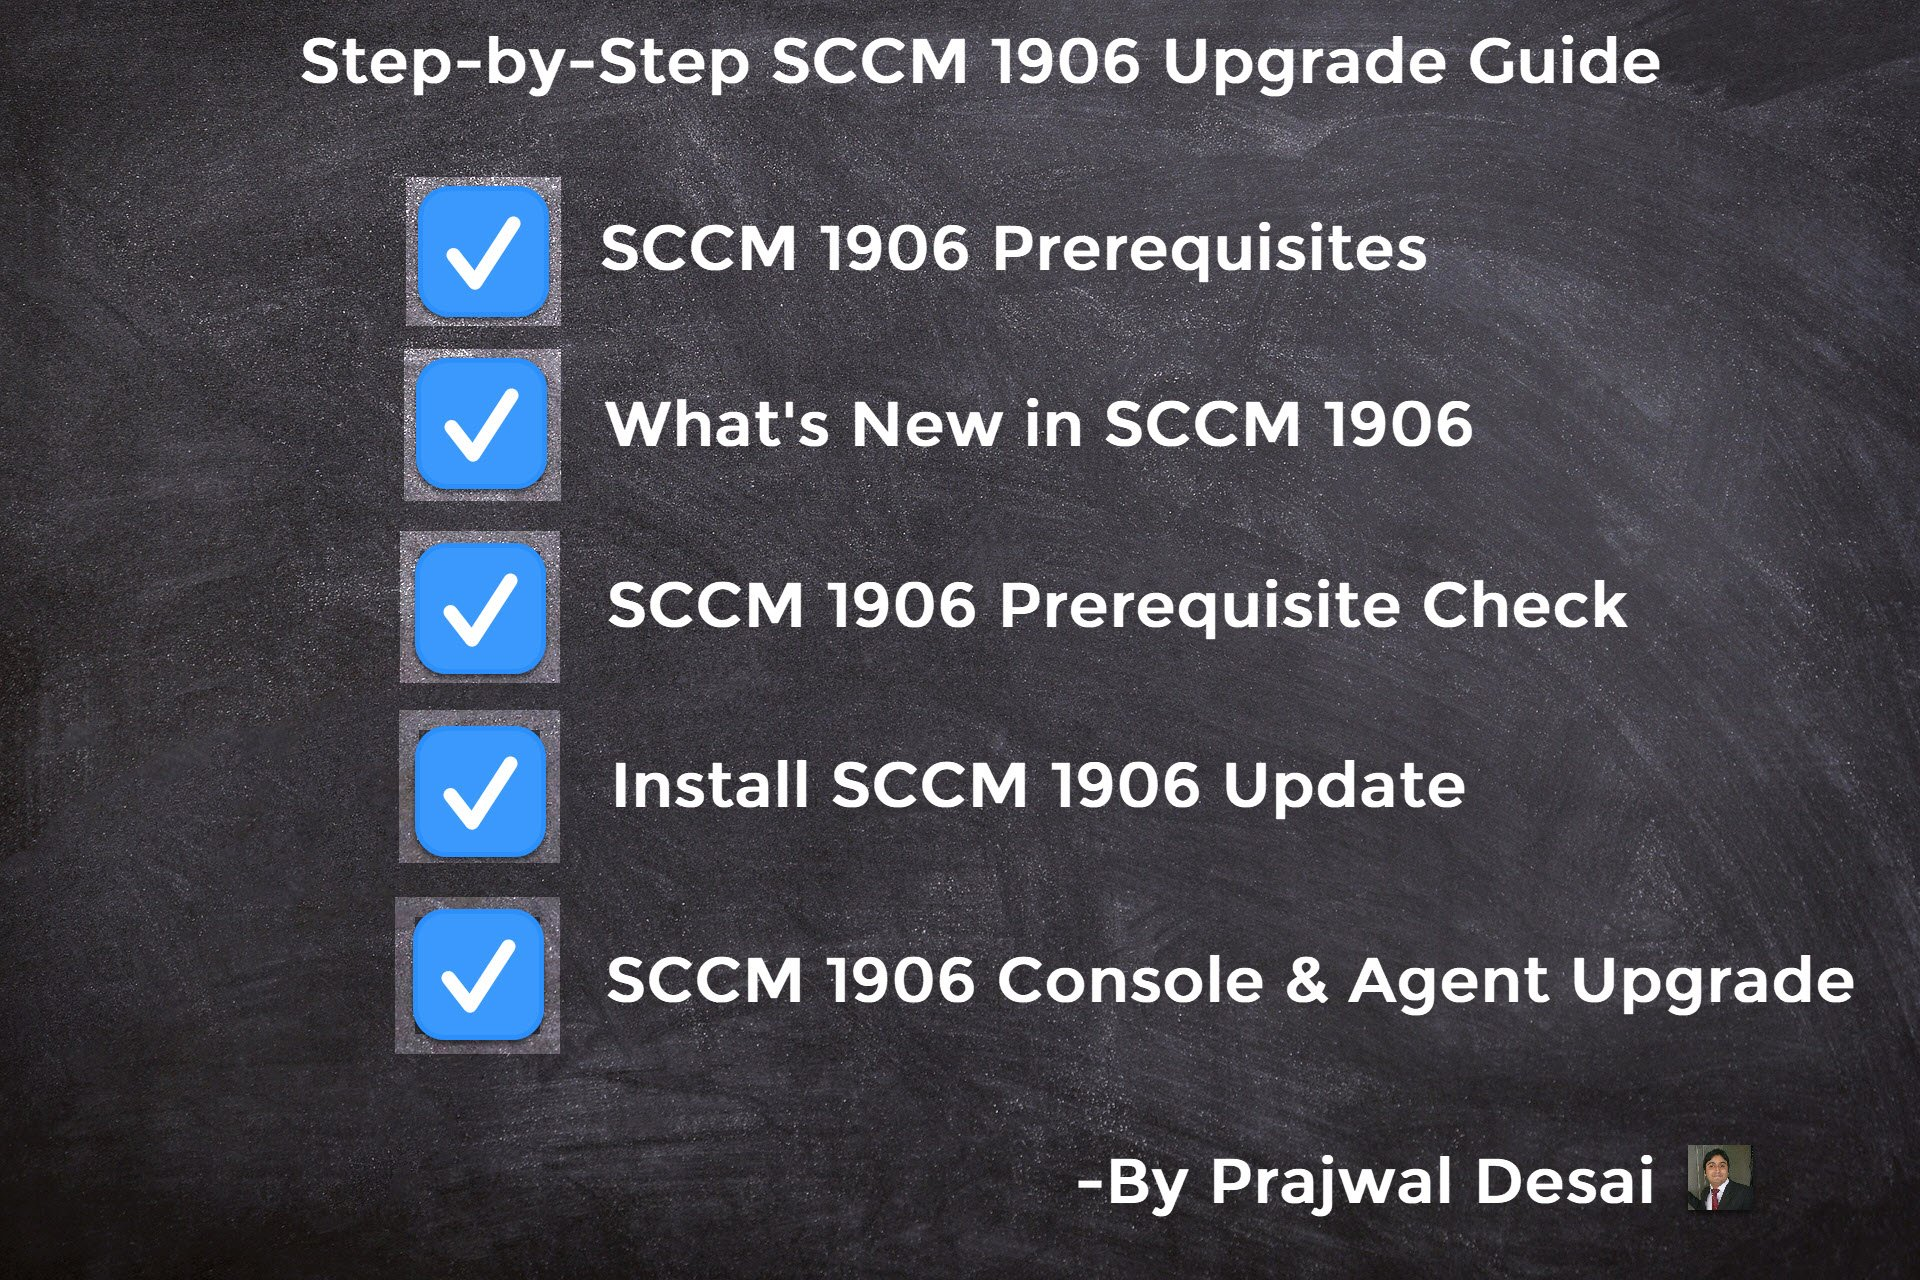 SCCM 1906 Step-by-Step Upgrade Guide – Prajwal Desai